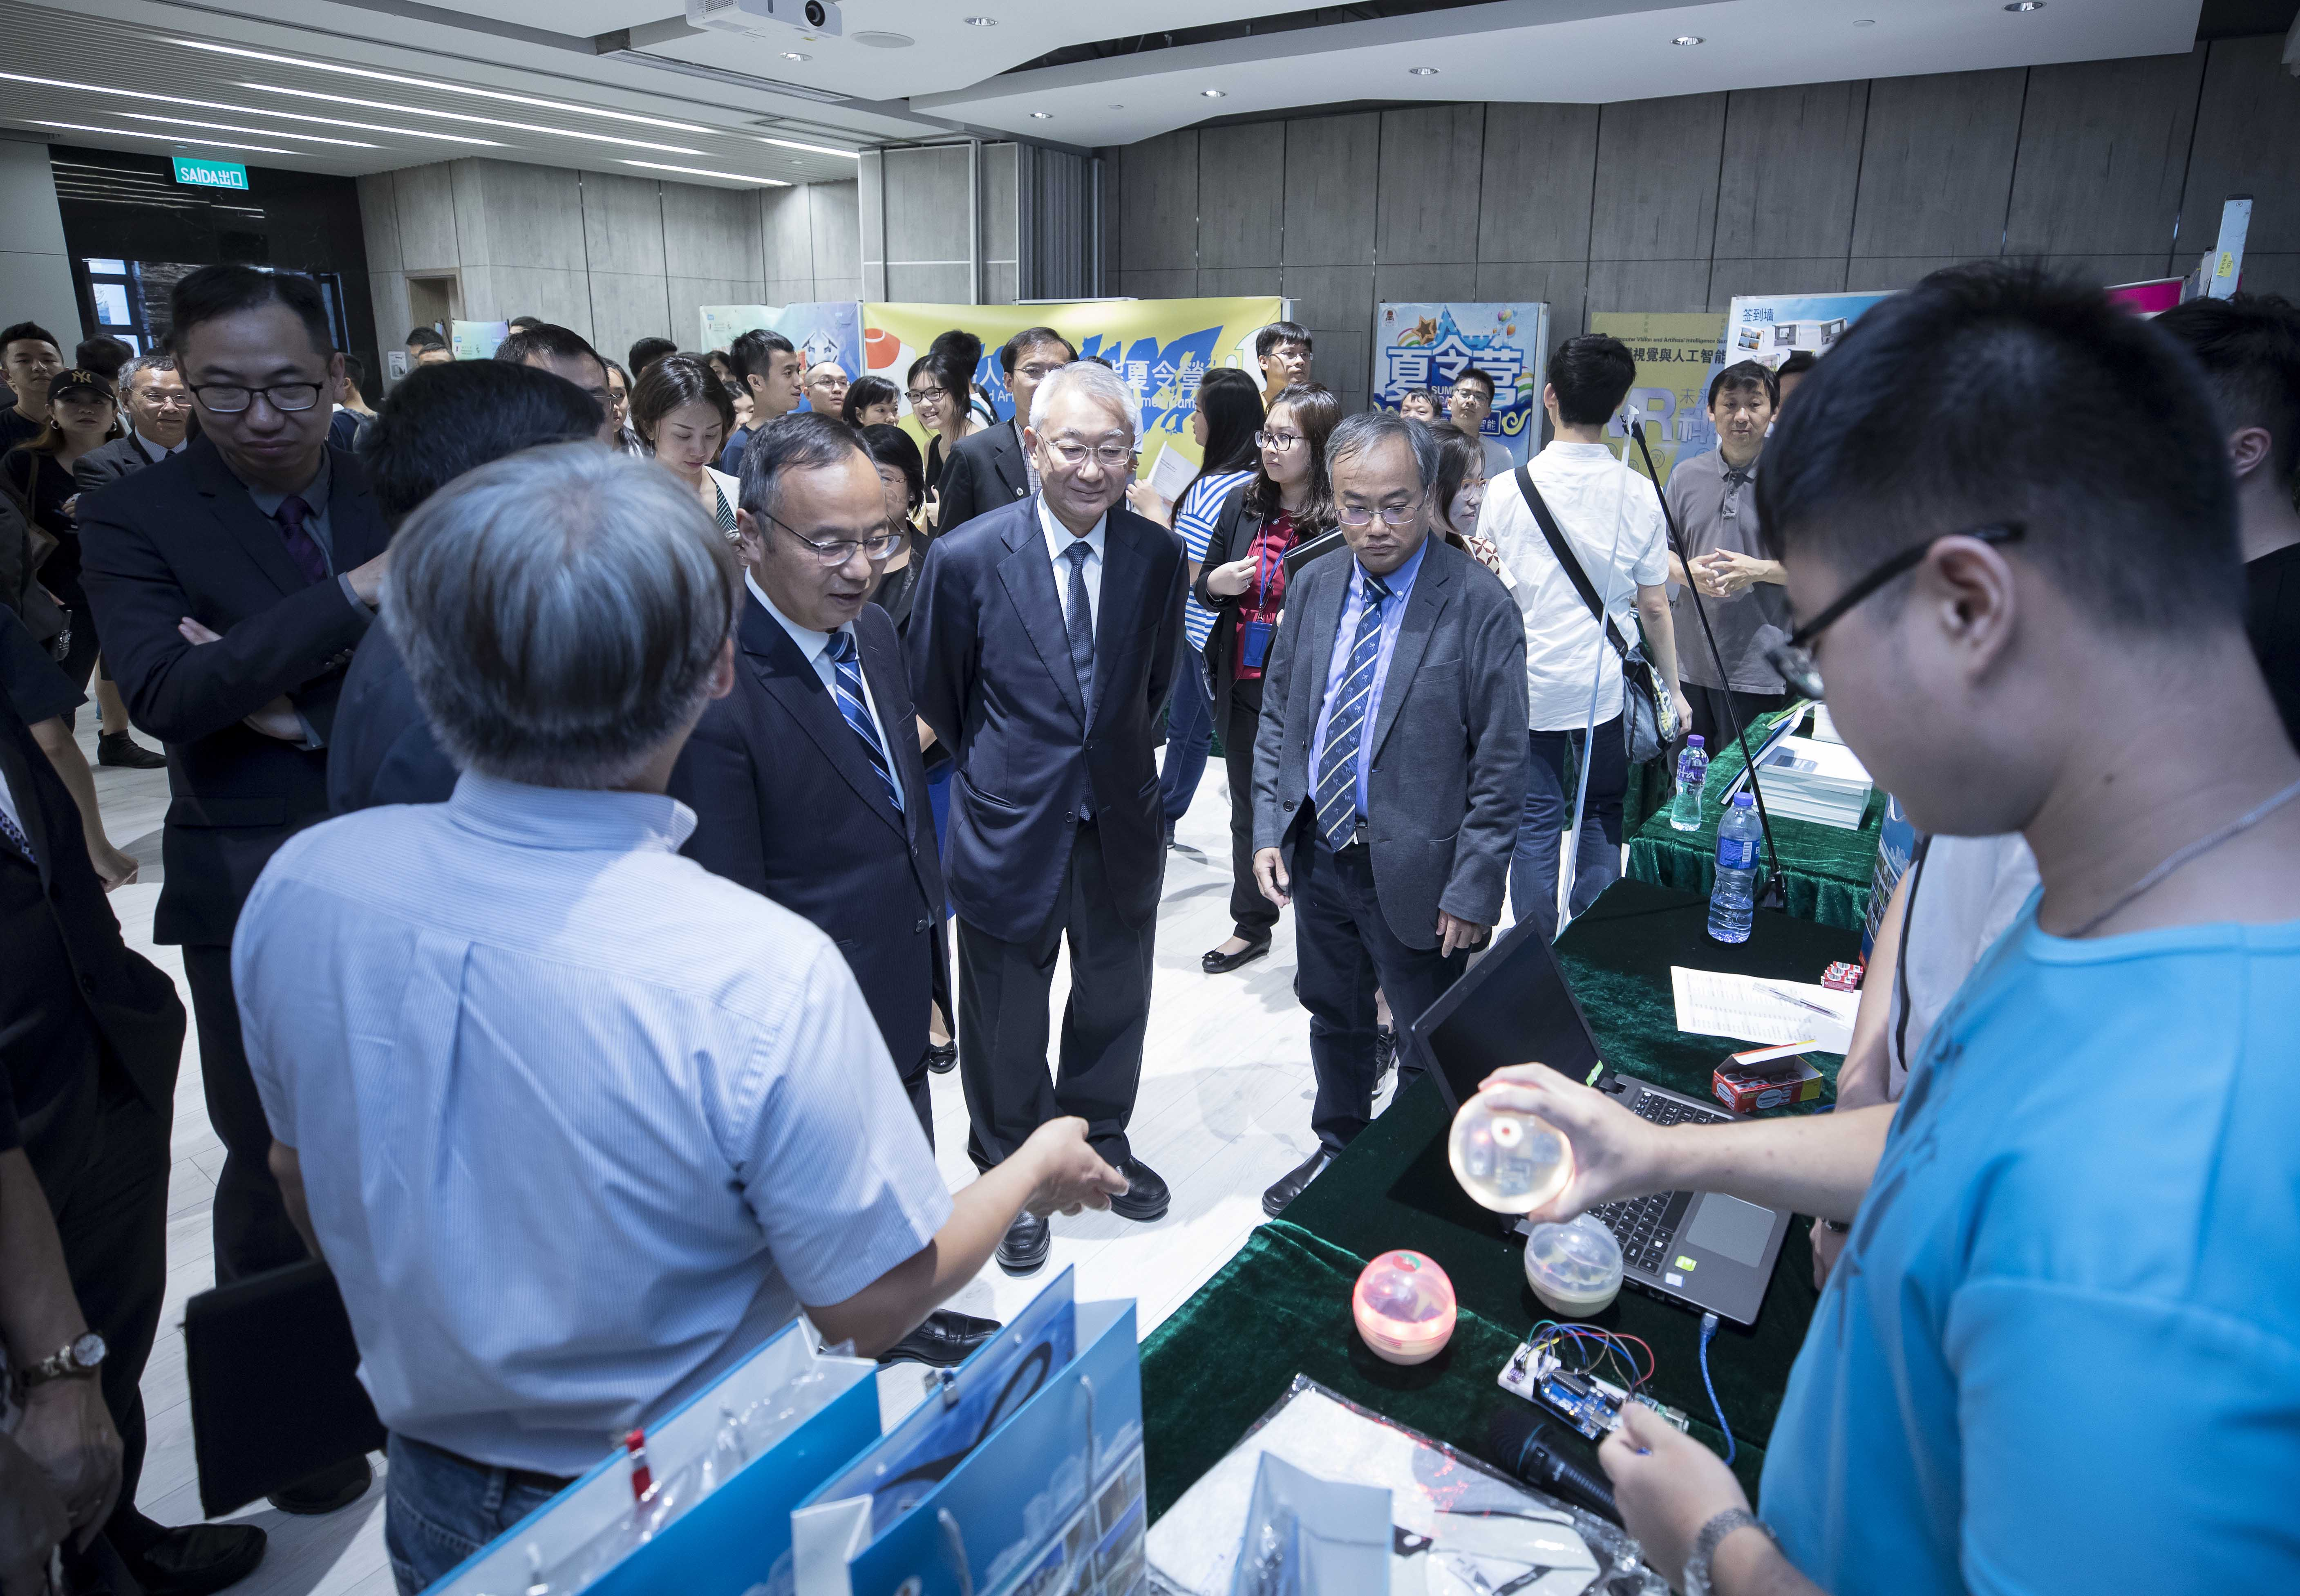 Guests visit the booths at a science promotion summer camp, which is part of the STEM Programme